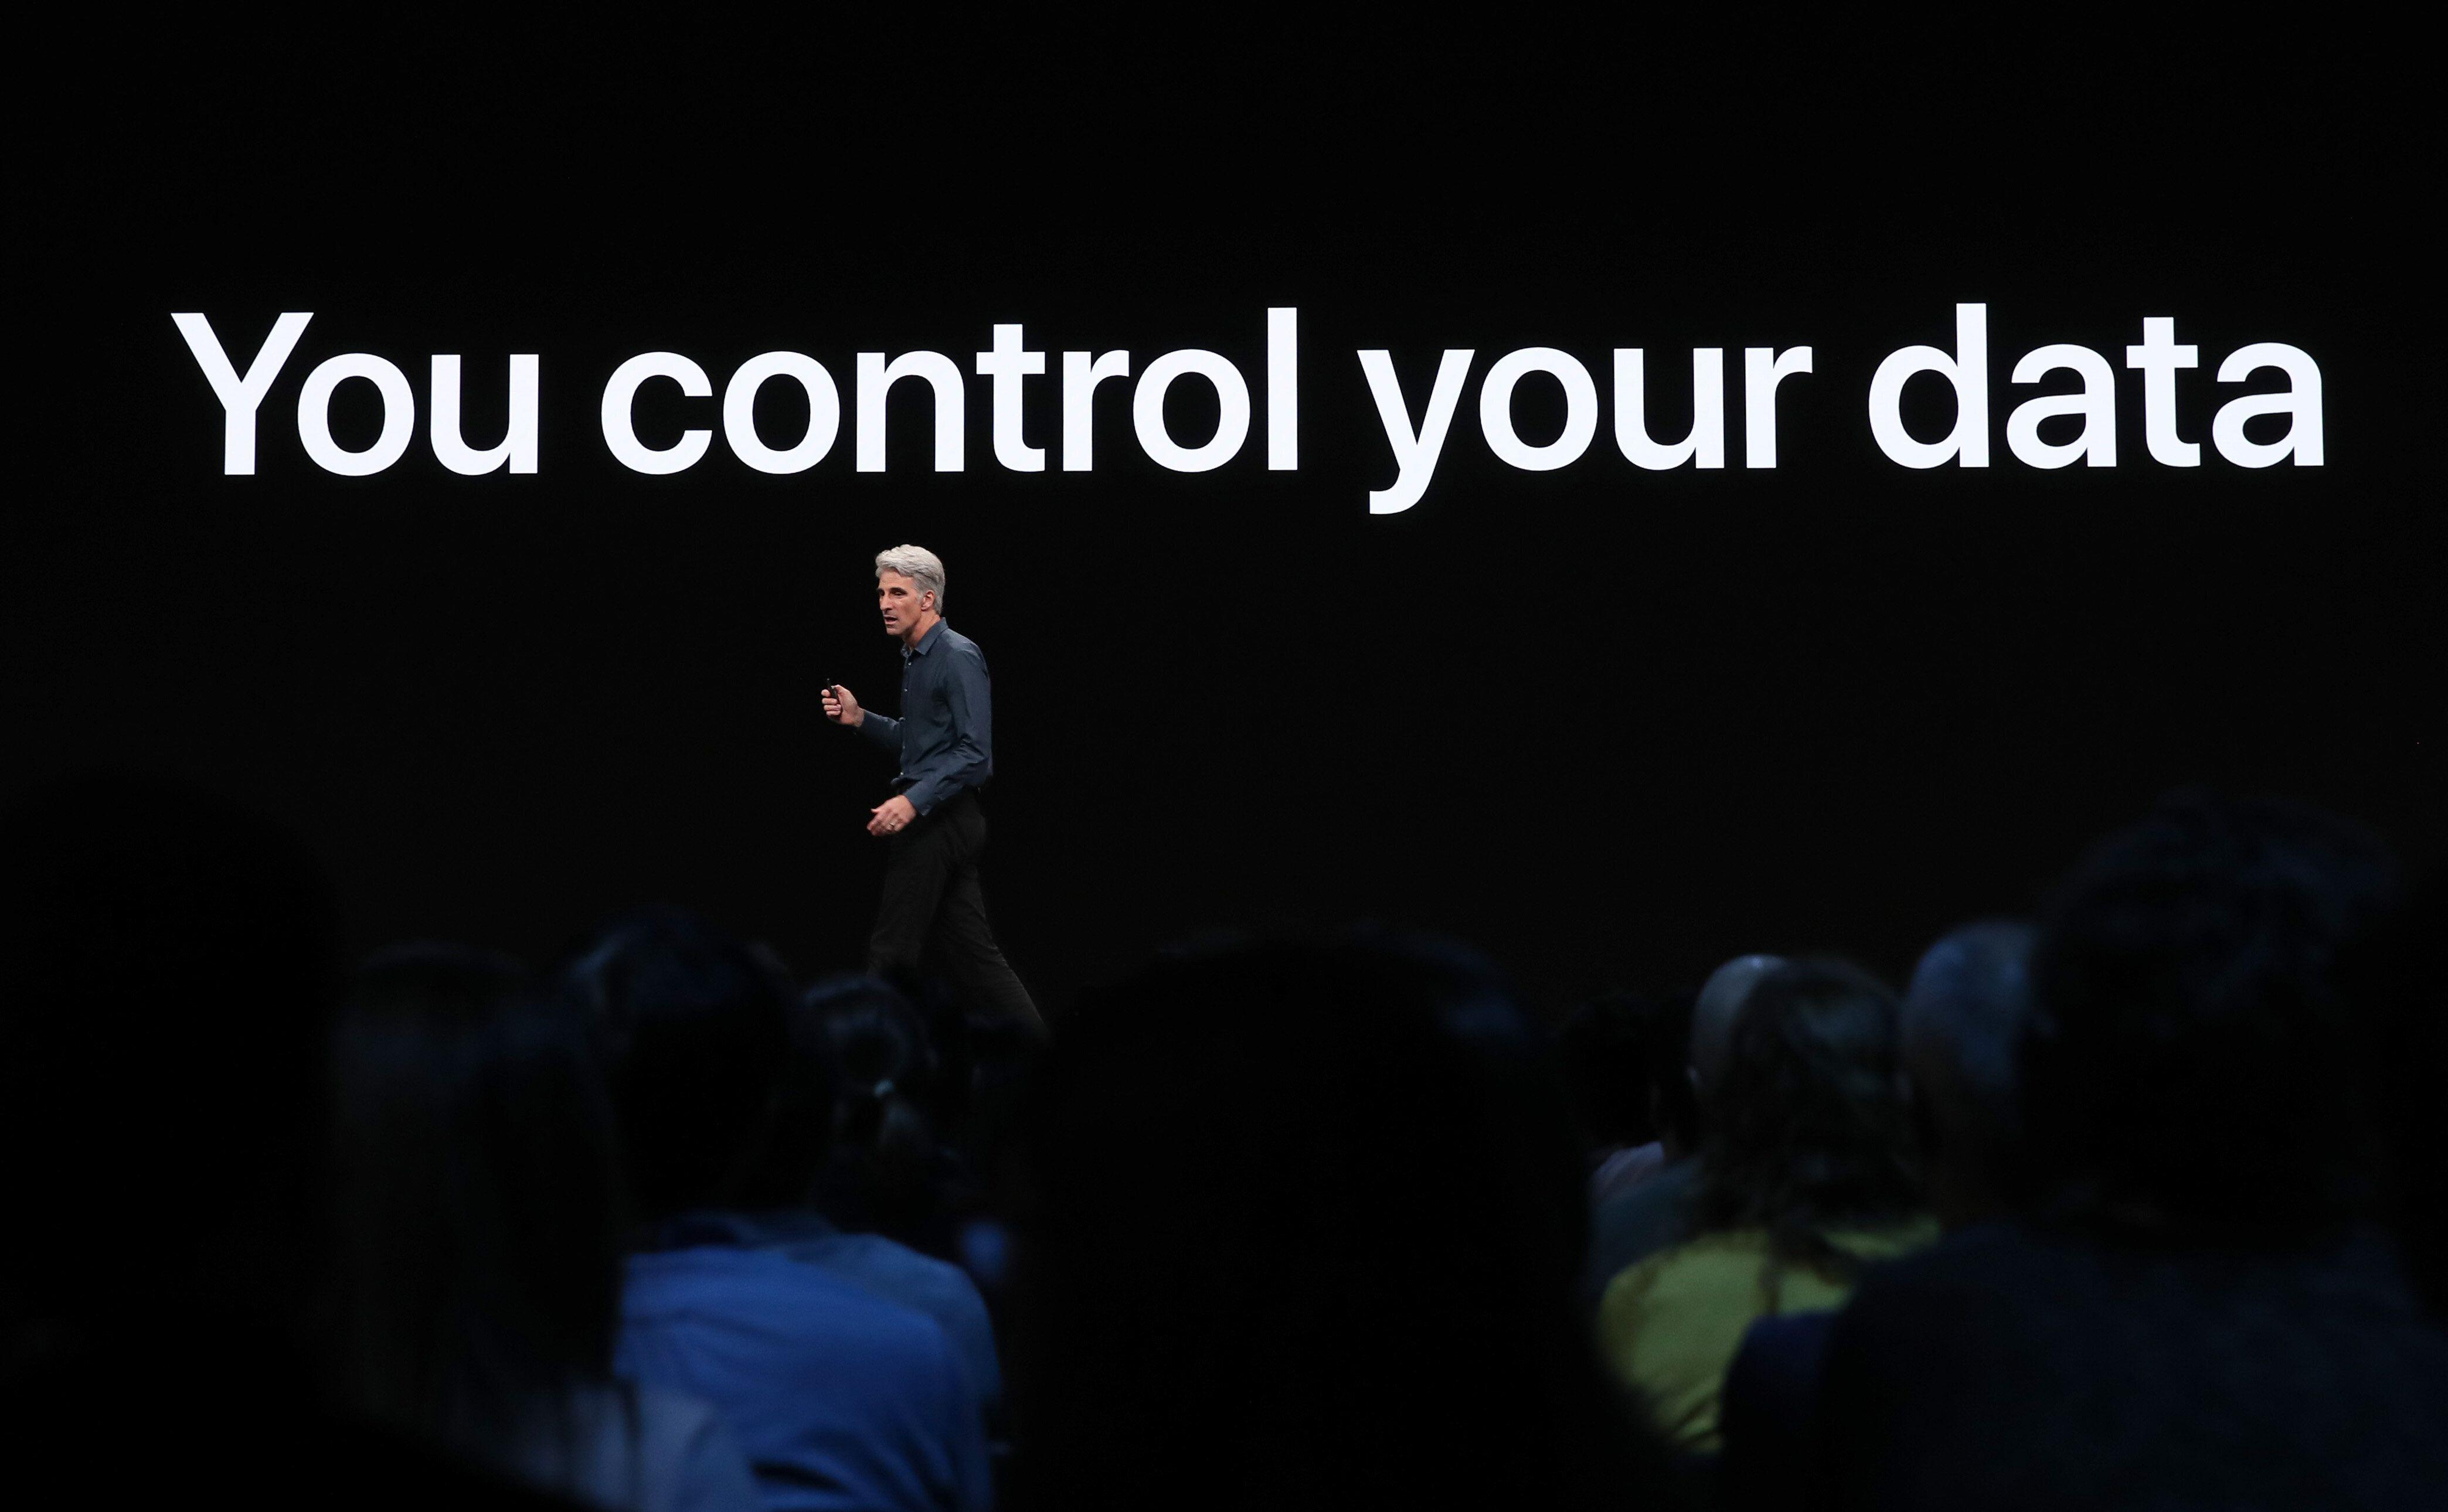 Apple's most important product isn't the iPhone anymore